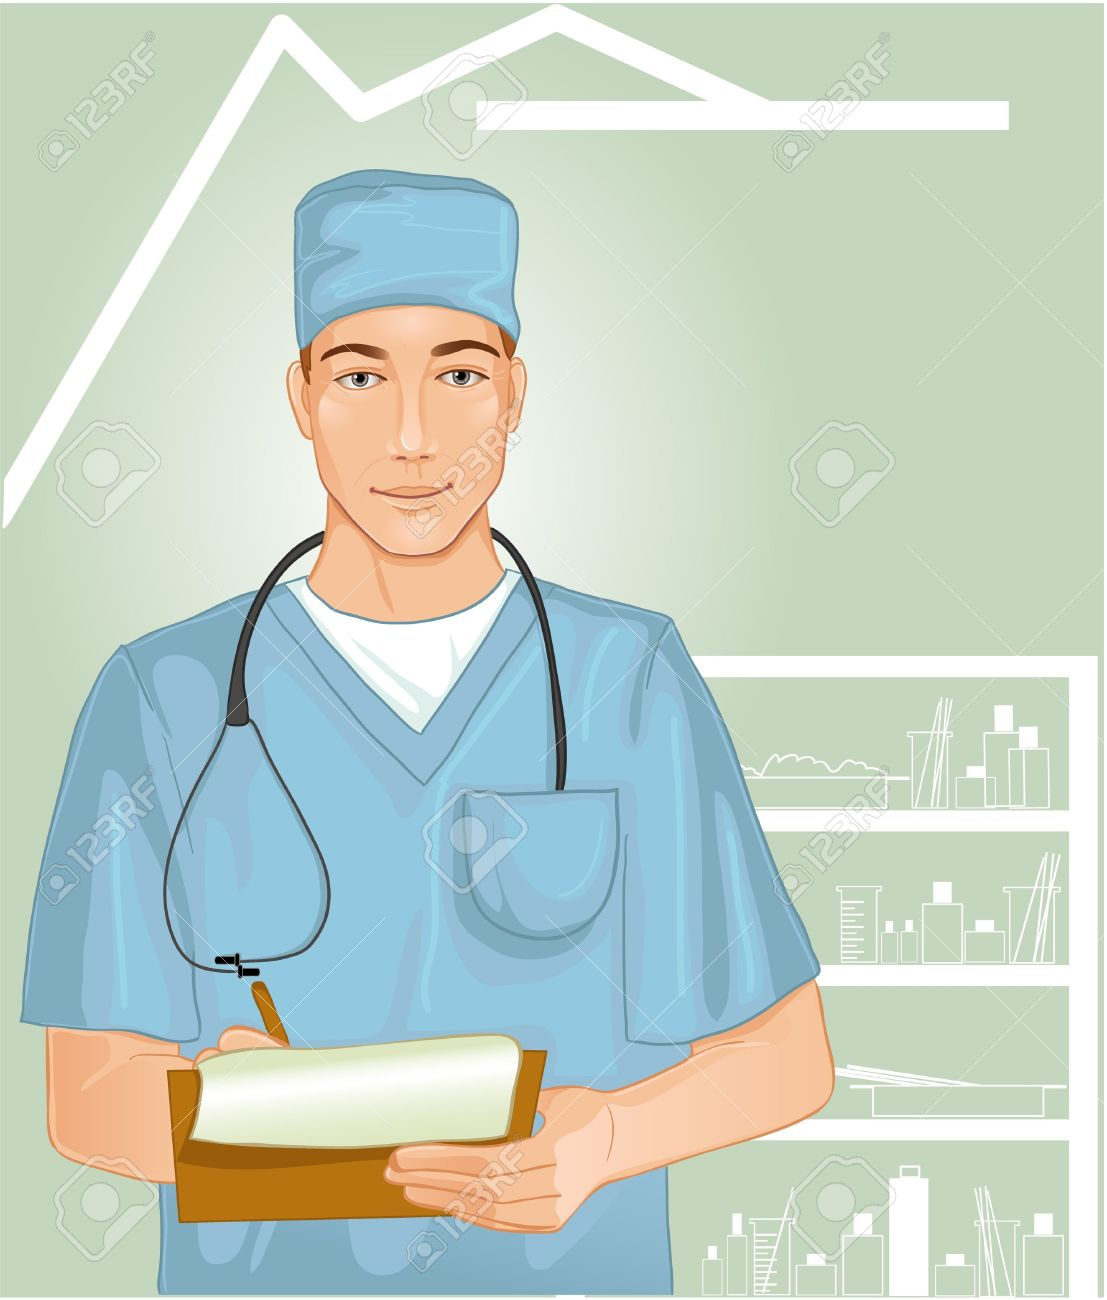 13712621-image-compassionate doctor